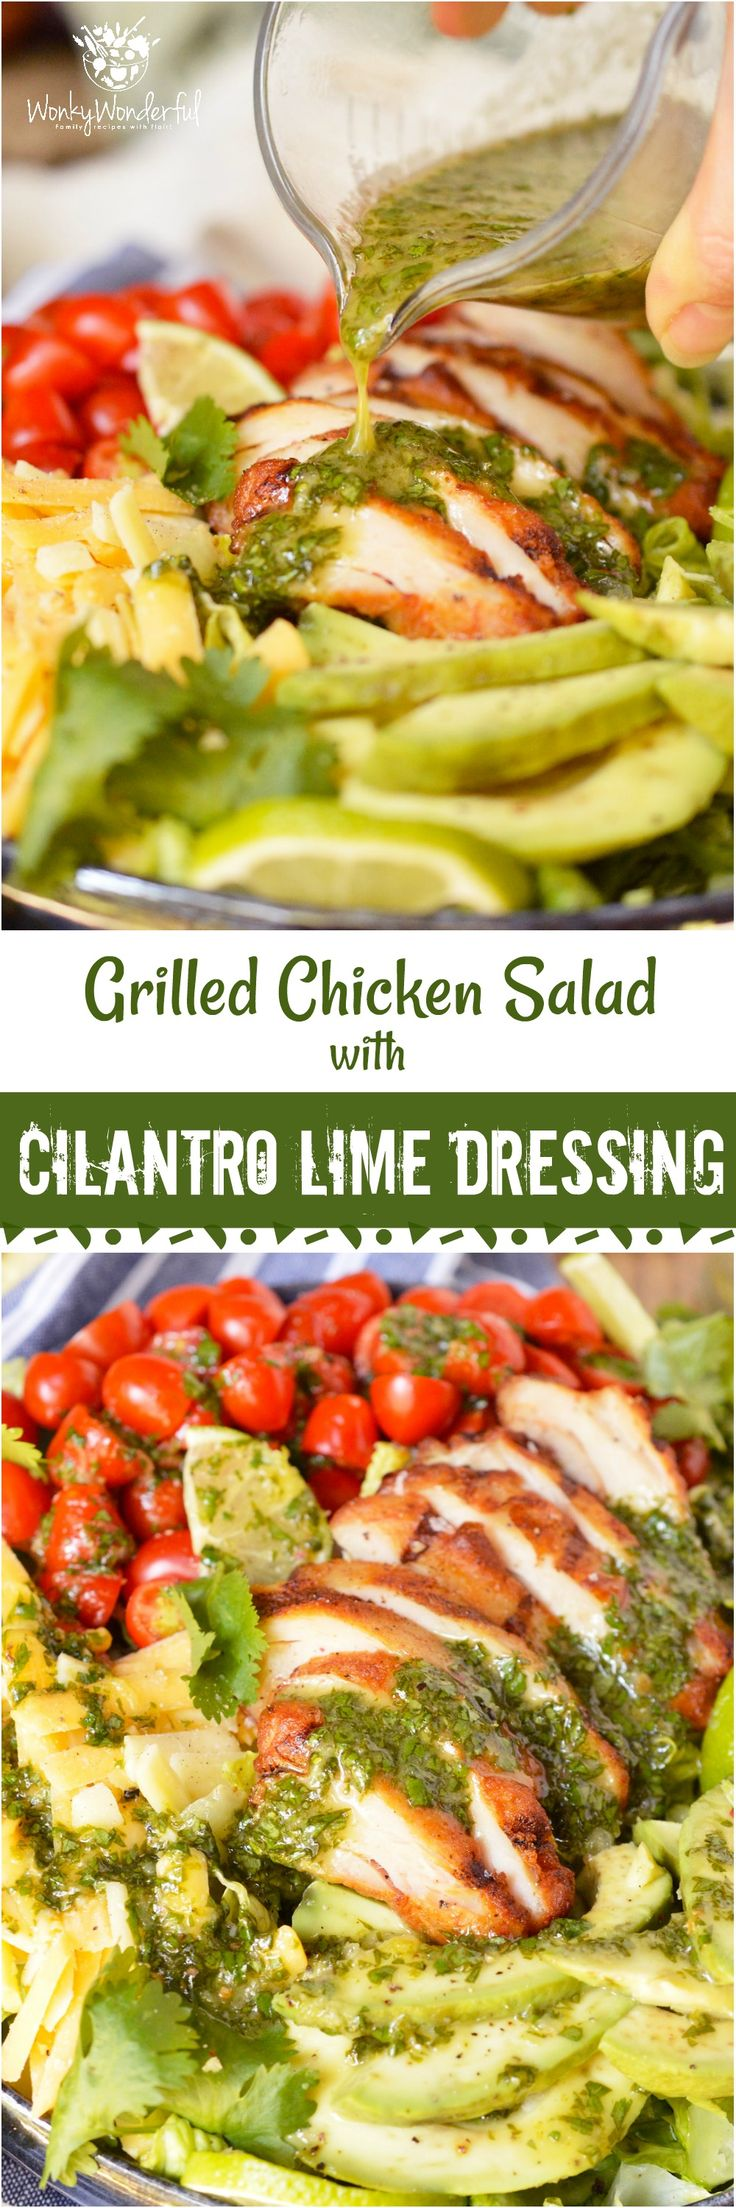 For a quick, fresh, easy and nutritious meal look no further than thisGrilled Chicken Salad with Cilantro Lime Dressing. Romaine lettuce topped with tomatoes, avocado, cheese, grilled chicken and cilantro lime vinaigrette... this is an easy dinner recipe that you can feel good about! #ad #healthyrecipe #wonkywonderful